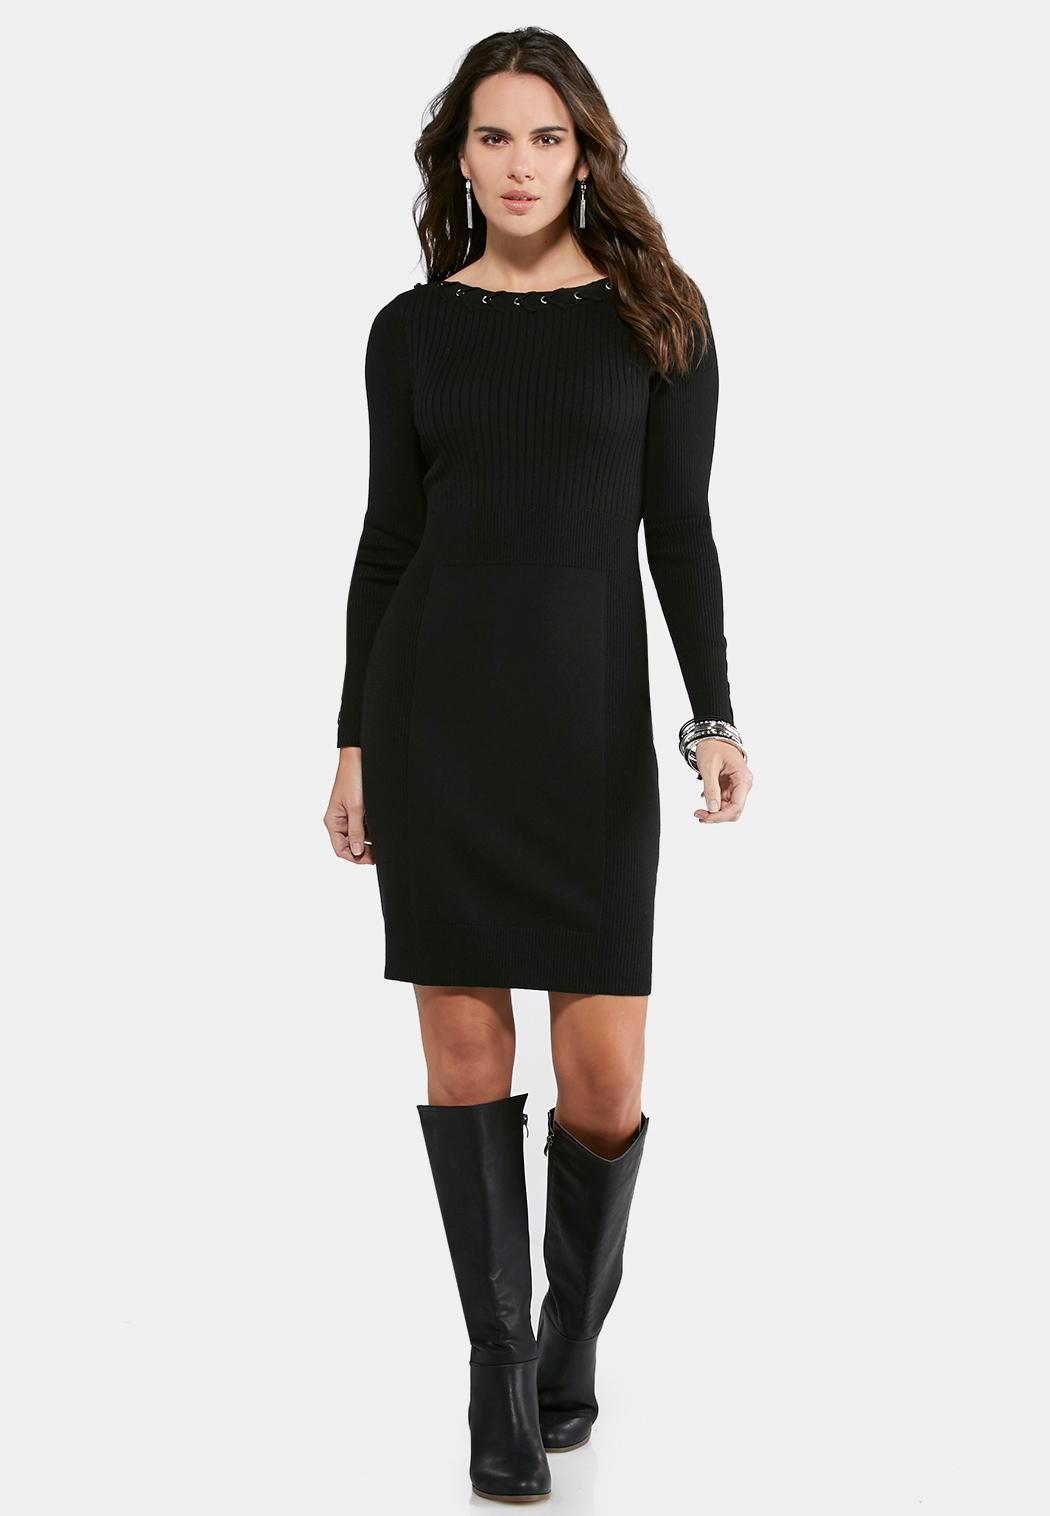 Grommet Trim Ribbed Sweater Dress Junior/Misses Cato Fashions